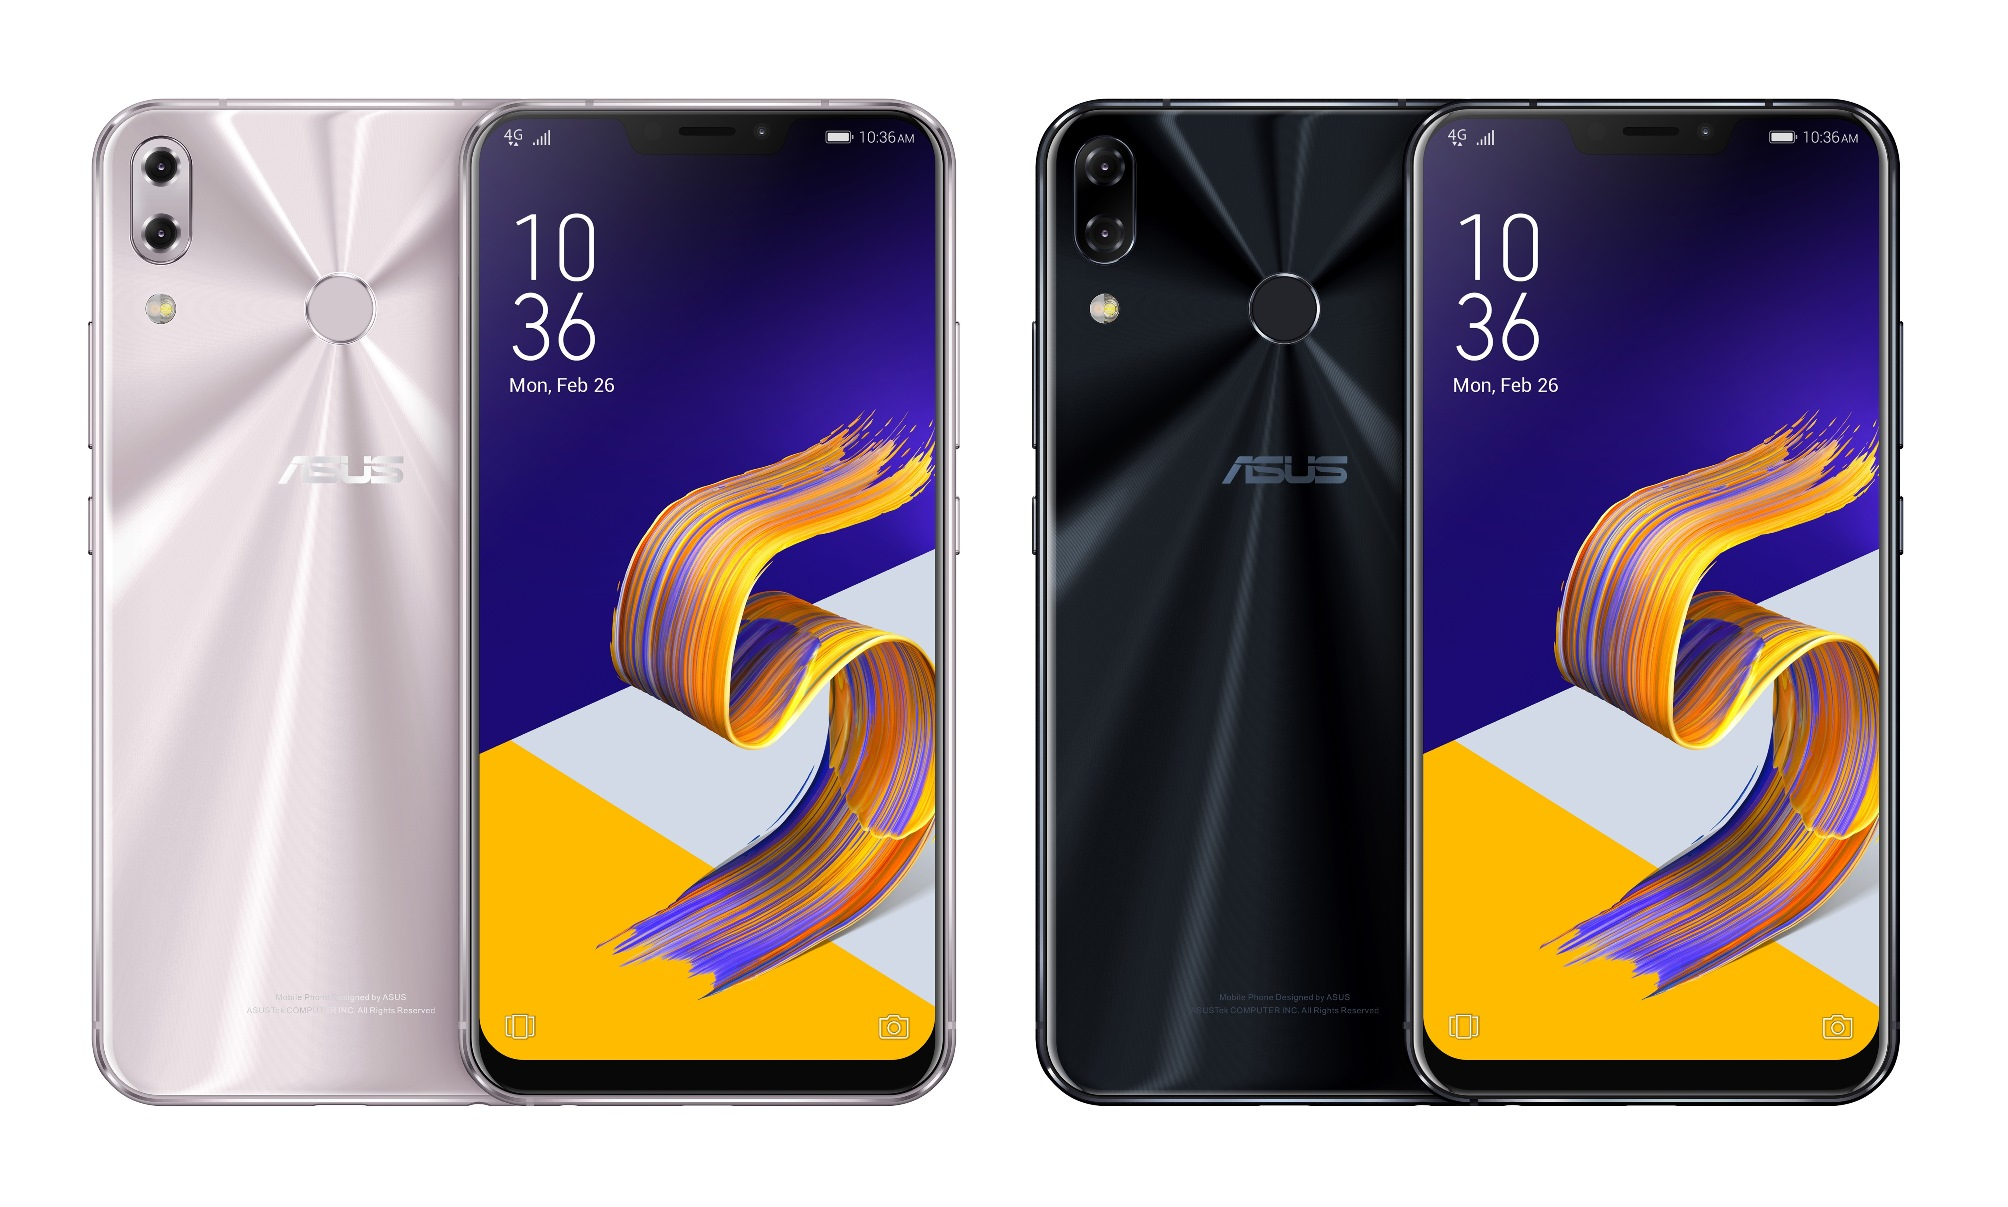 Asus to launch Zenfone 5z in India today, expected to undercut OnePlus 6 in price